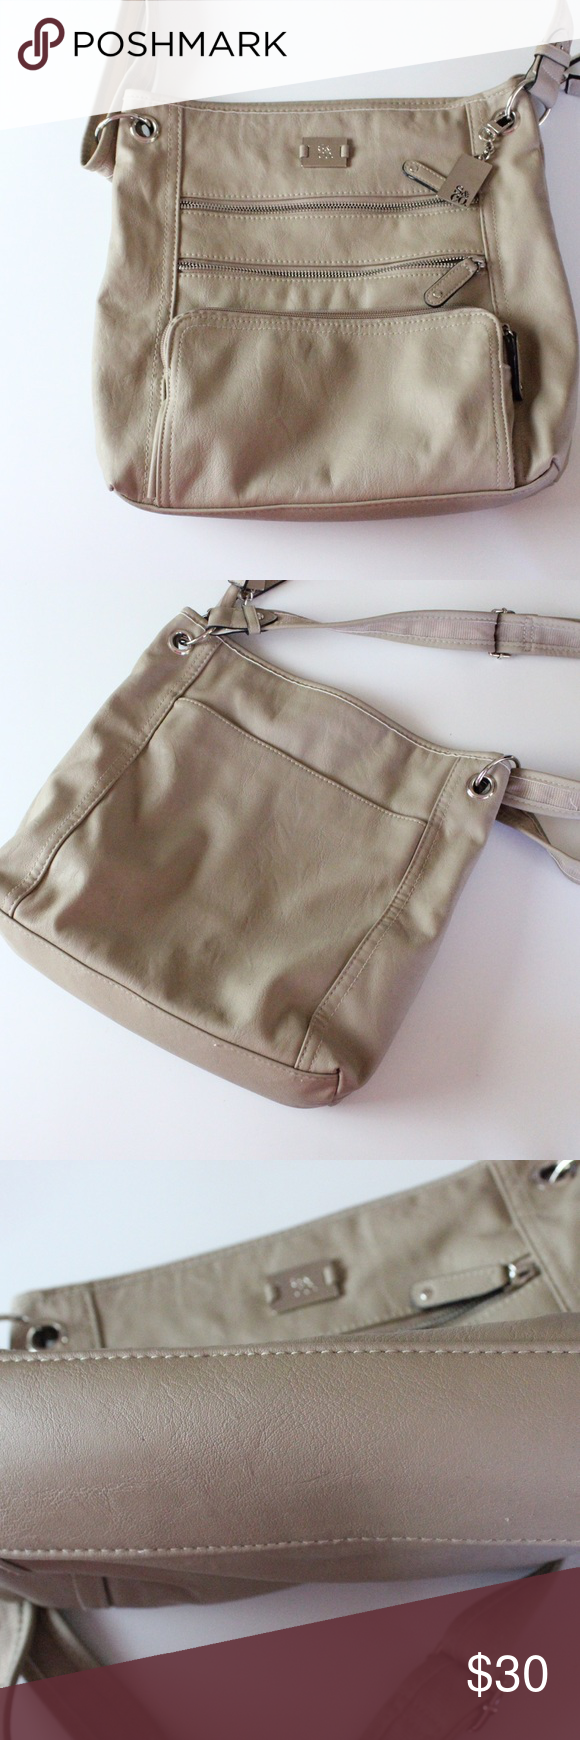 Style & Co Bag Soft cream colored bag with adjustable strap! Good condition, minor ware. Let me know if you would like measurements :) Style & Co Bags Shoulder Bags